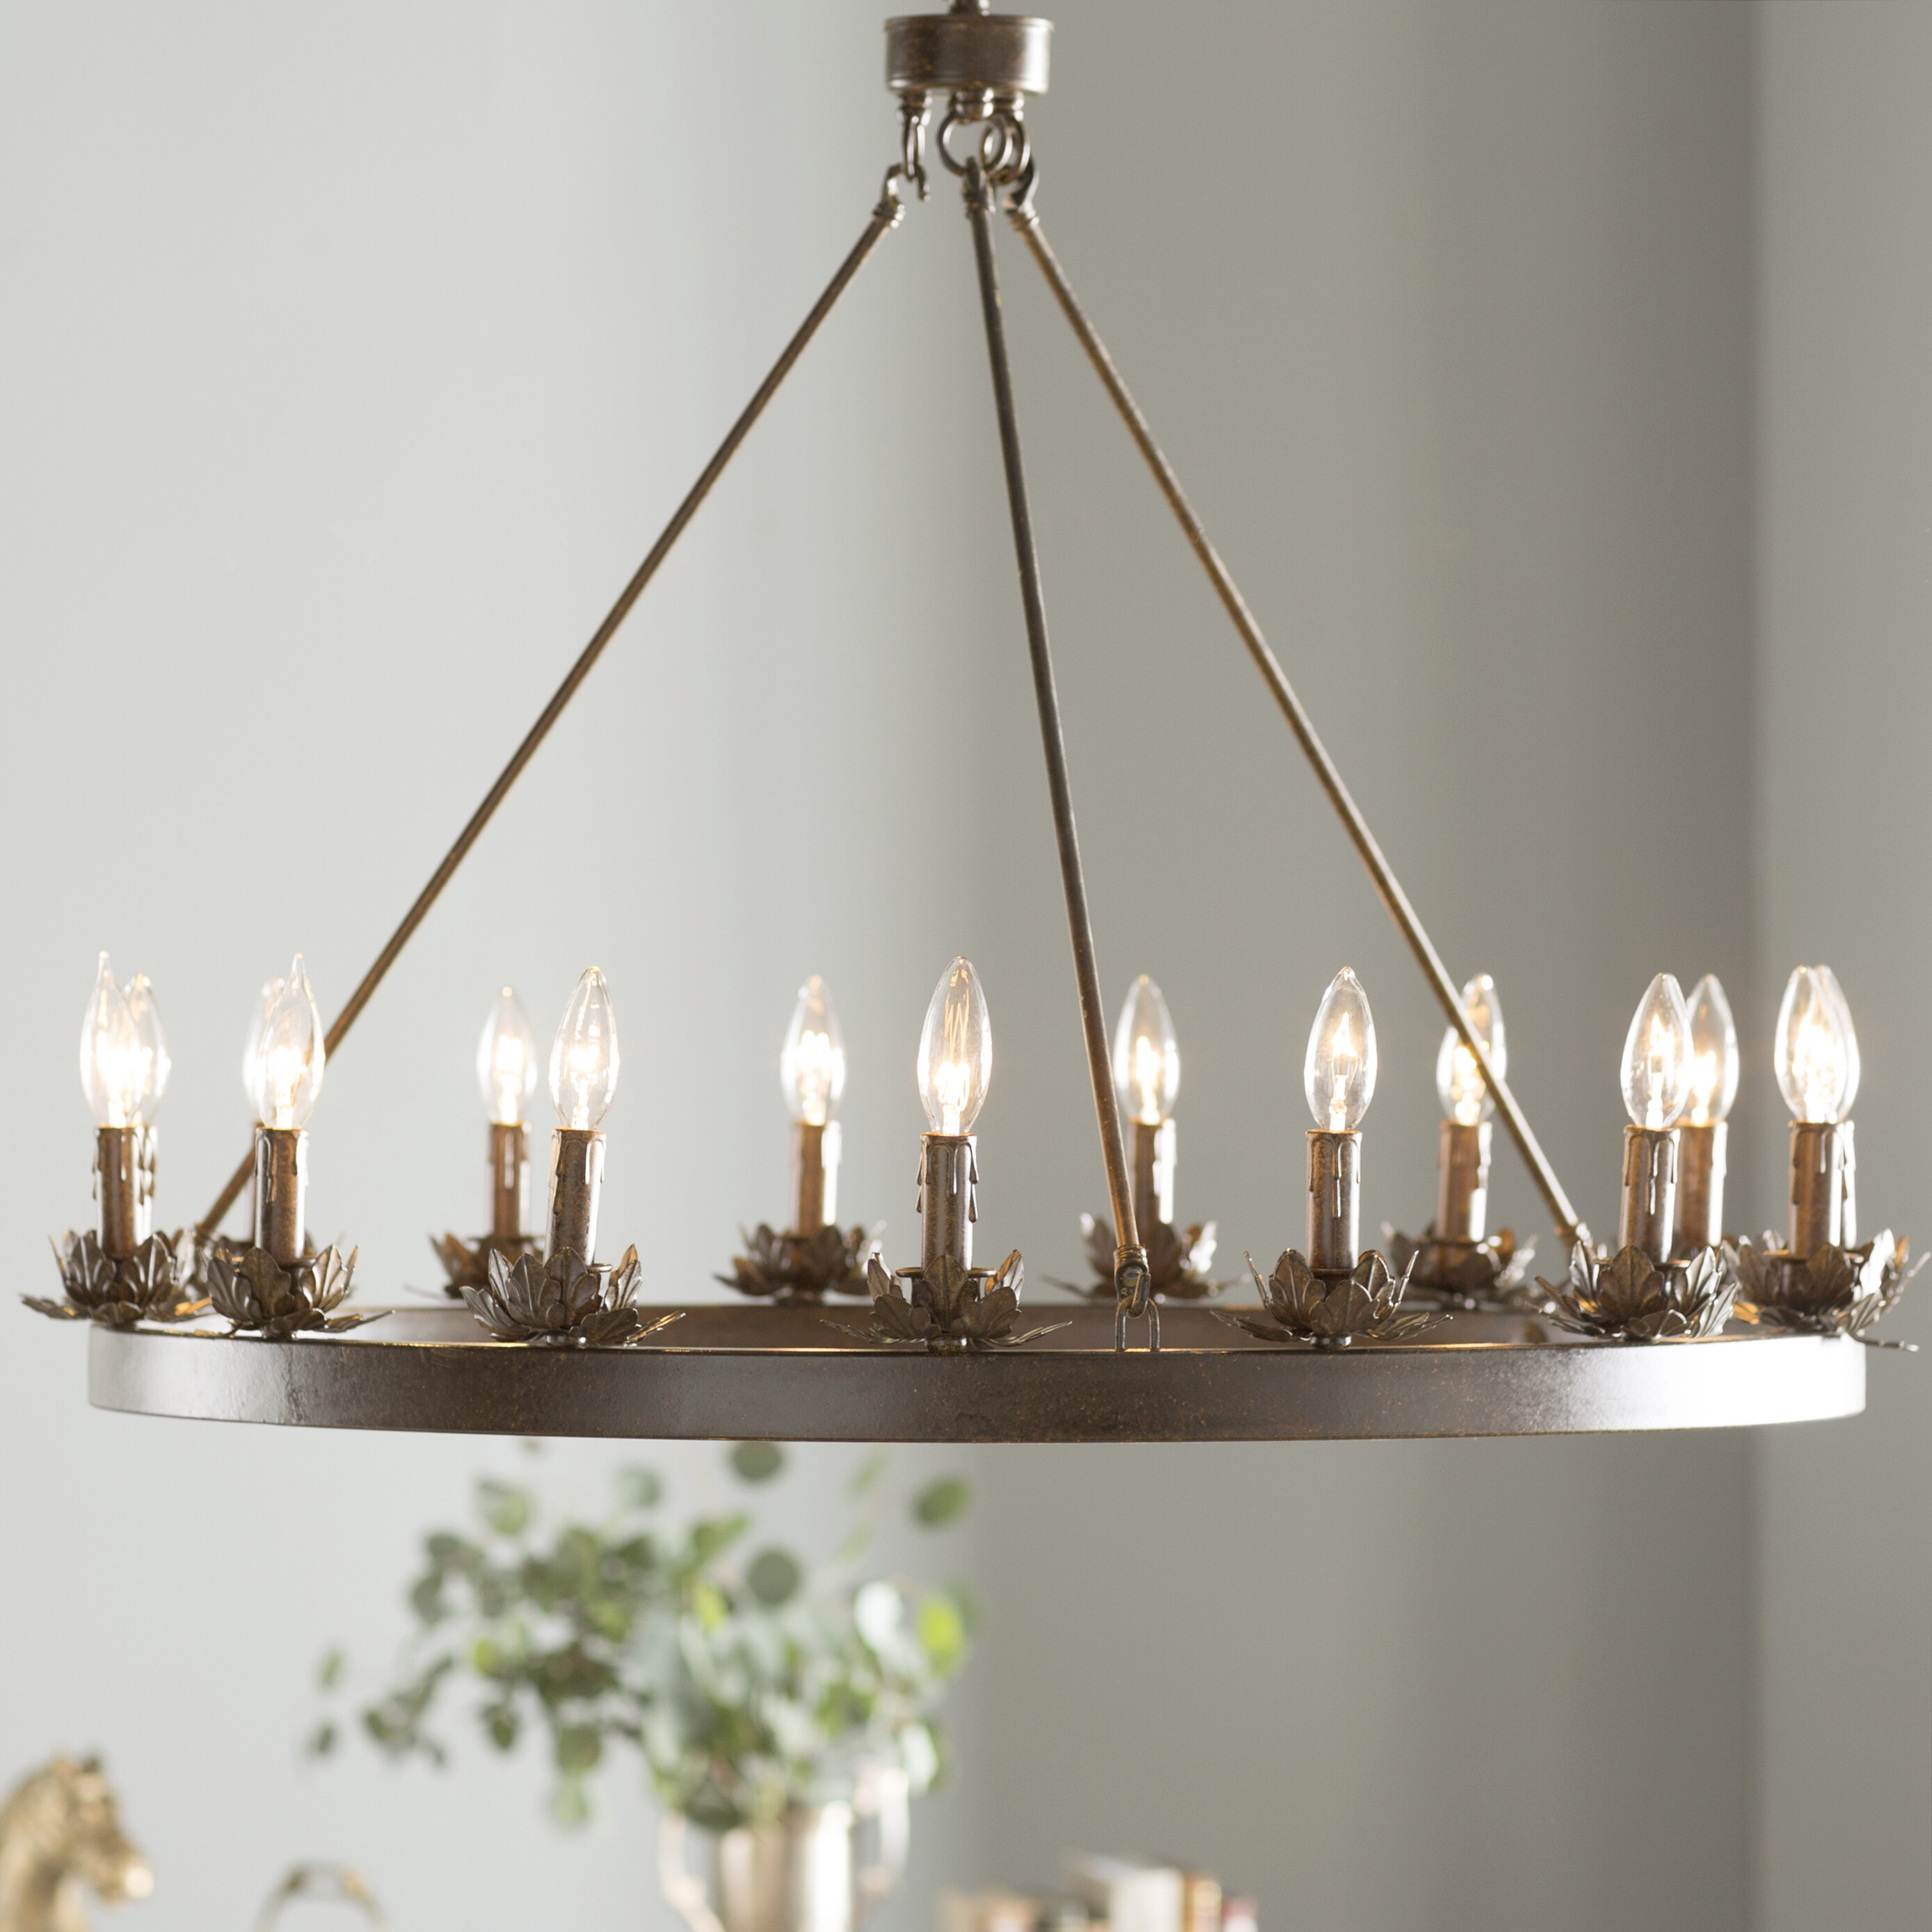 Mcmahon 12 light wagon wheel chandelier